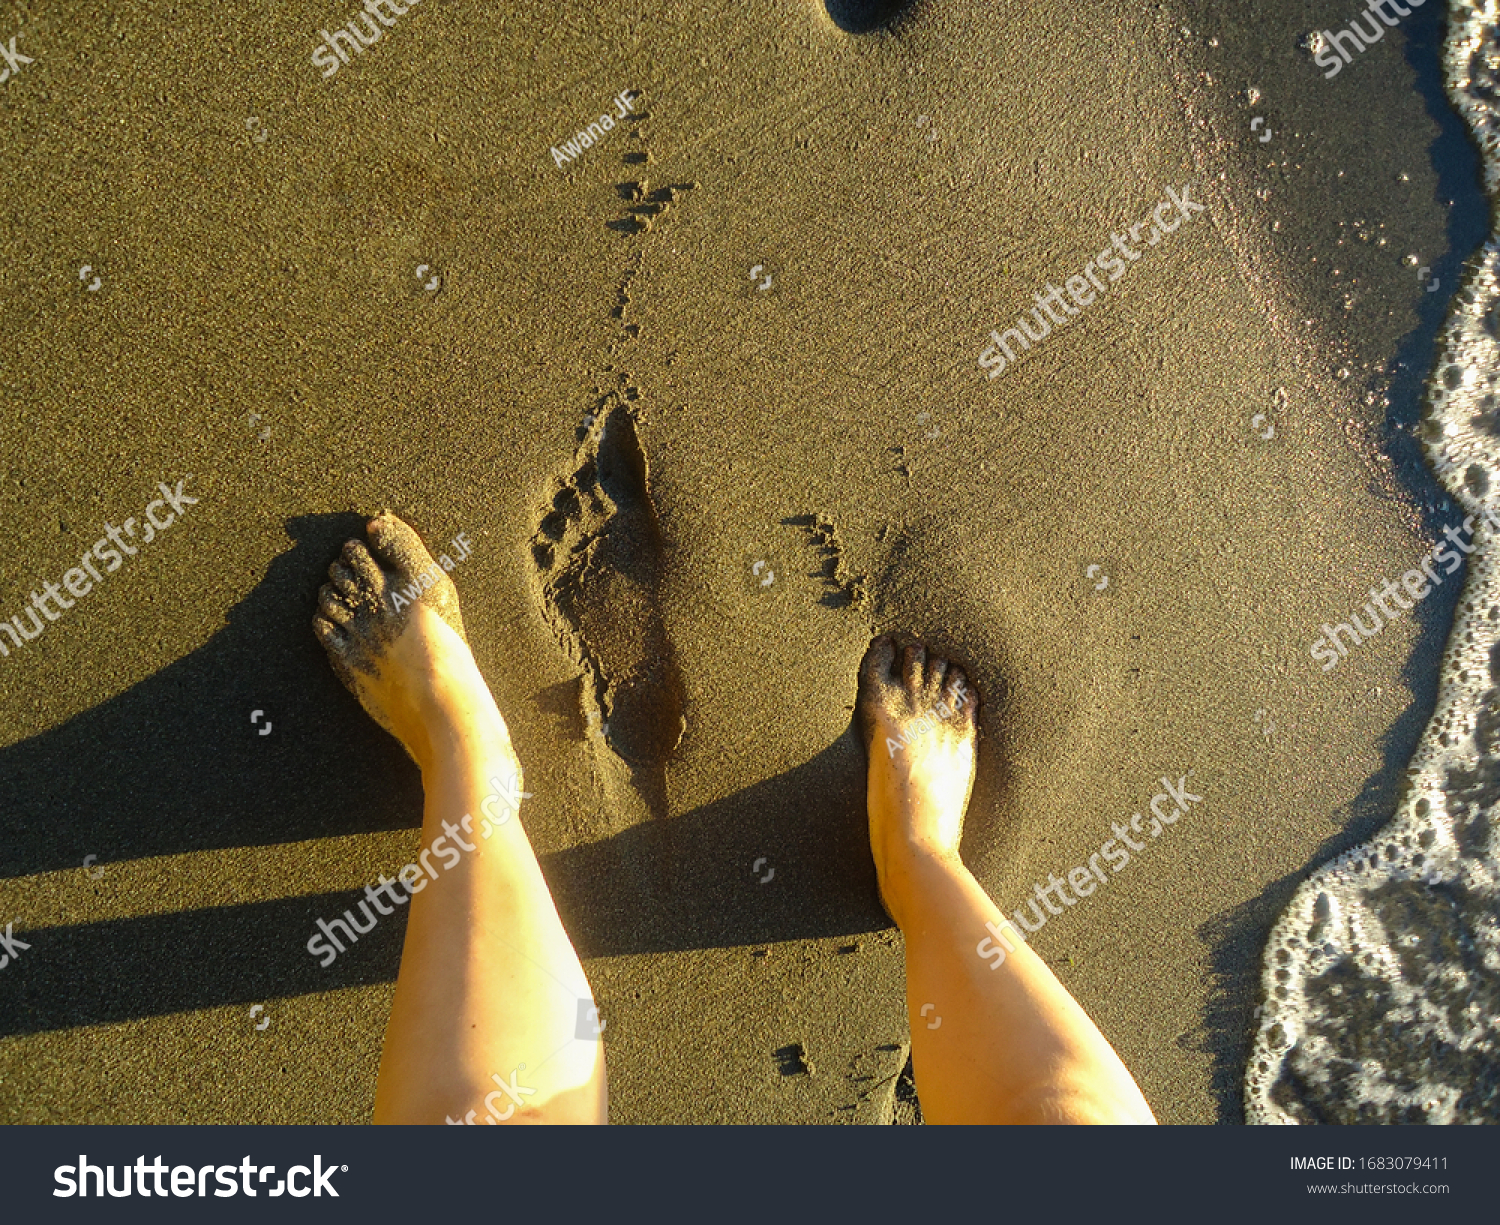 stock-photo-female-feet-and-footprints-i